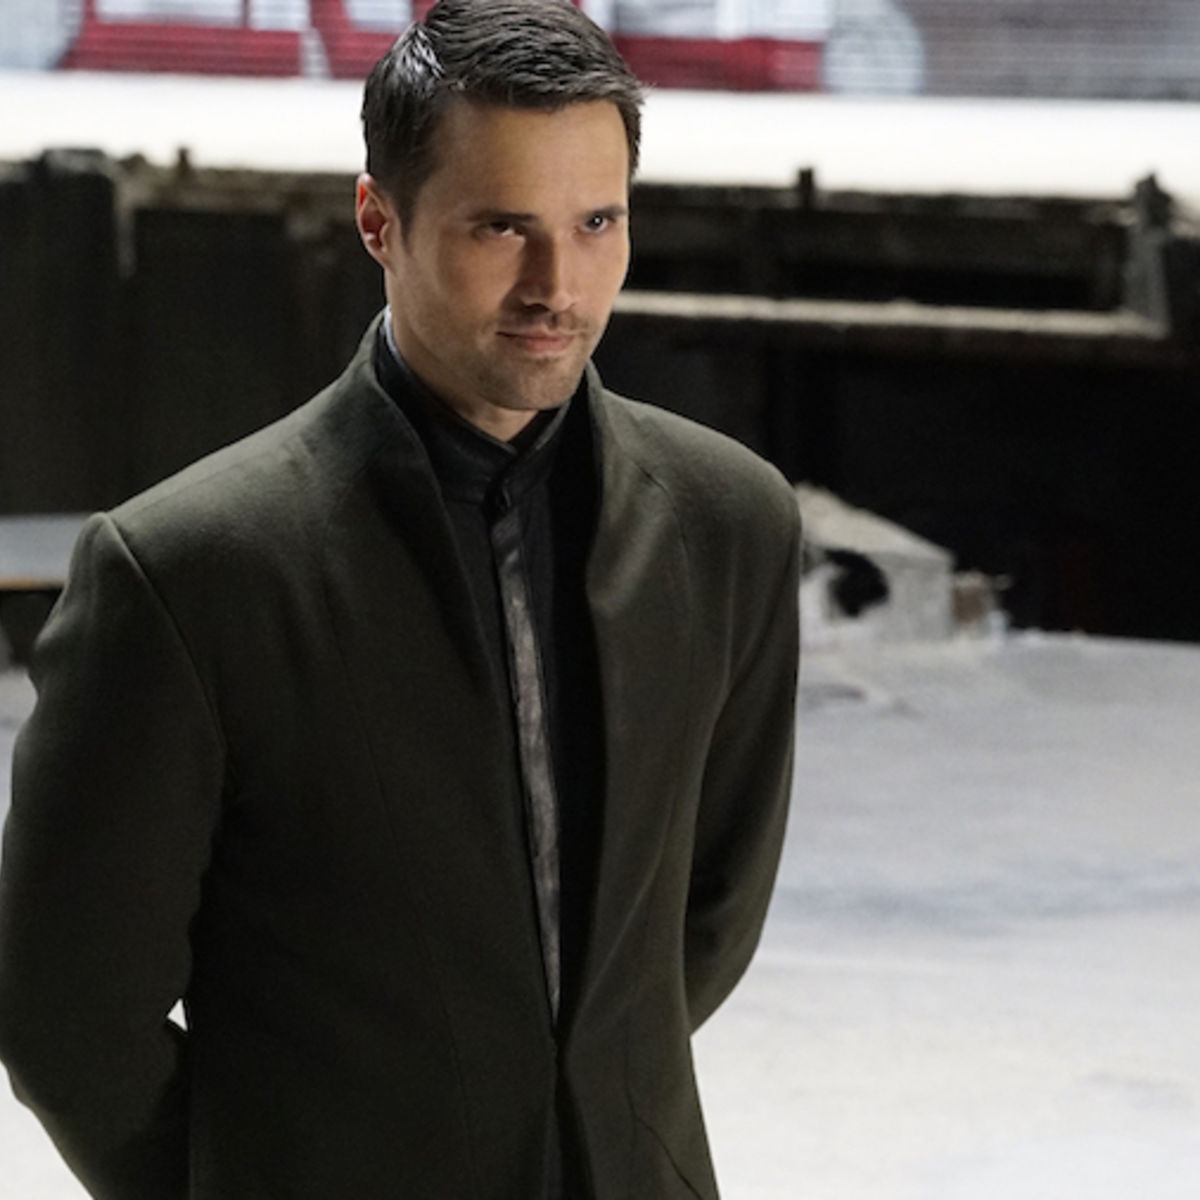 brett-dalton-shield-abc5.jpg